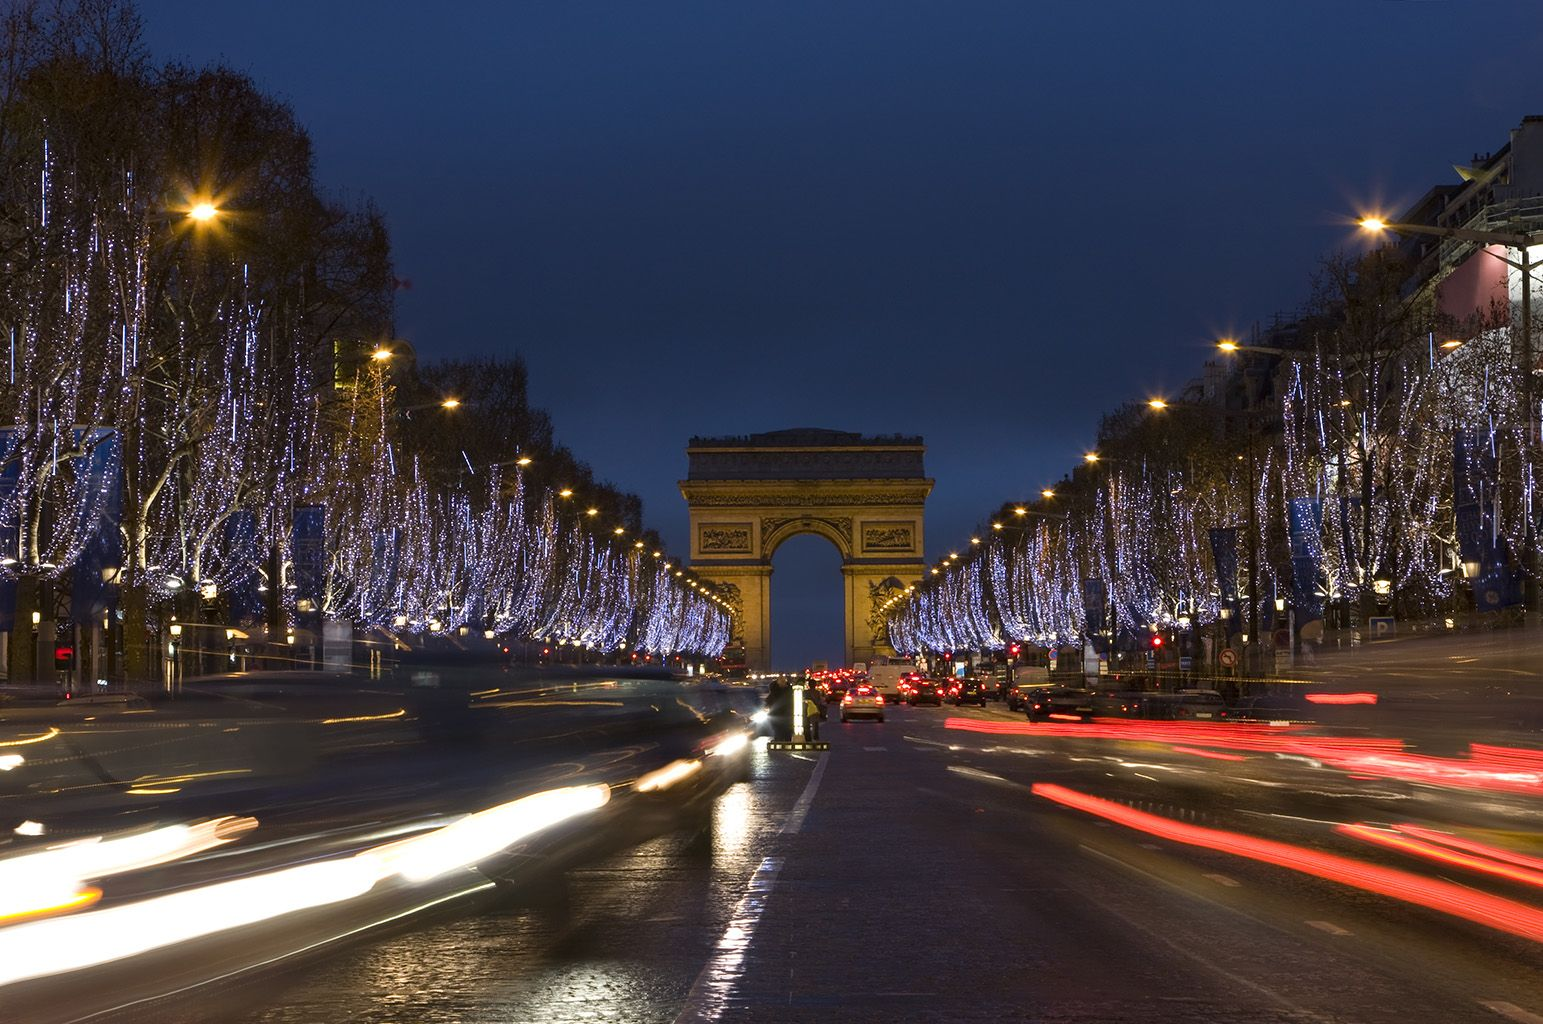 You Can Now Take Part In The Virtual Christmas Lighting At The Champs Élysées